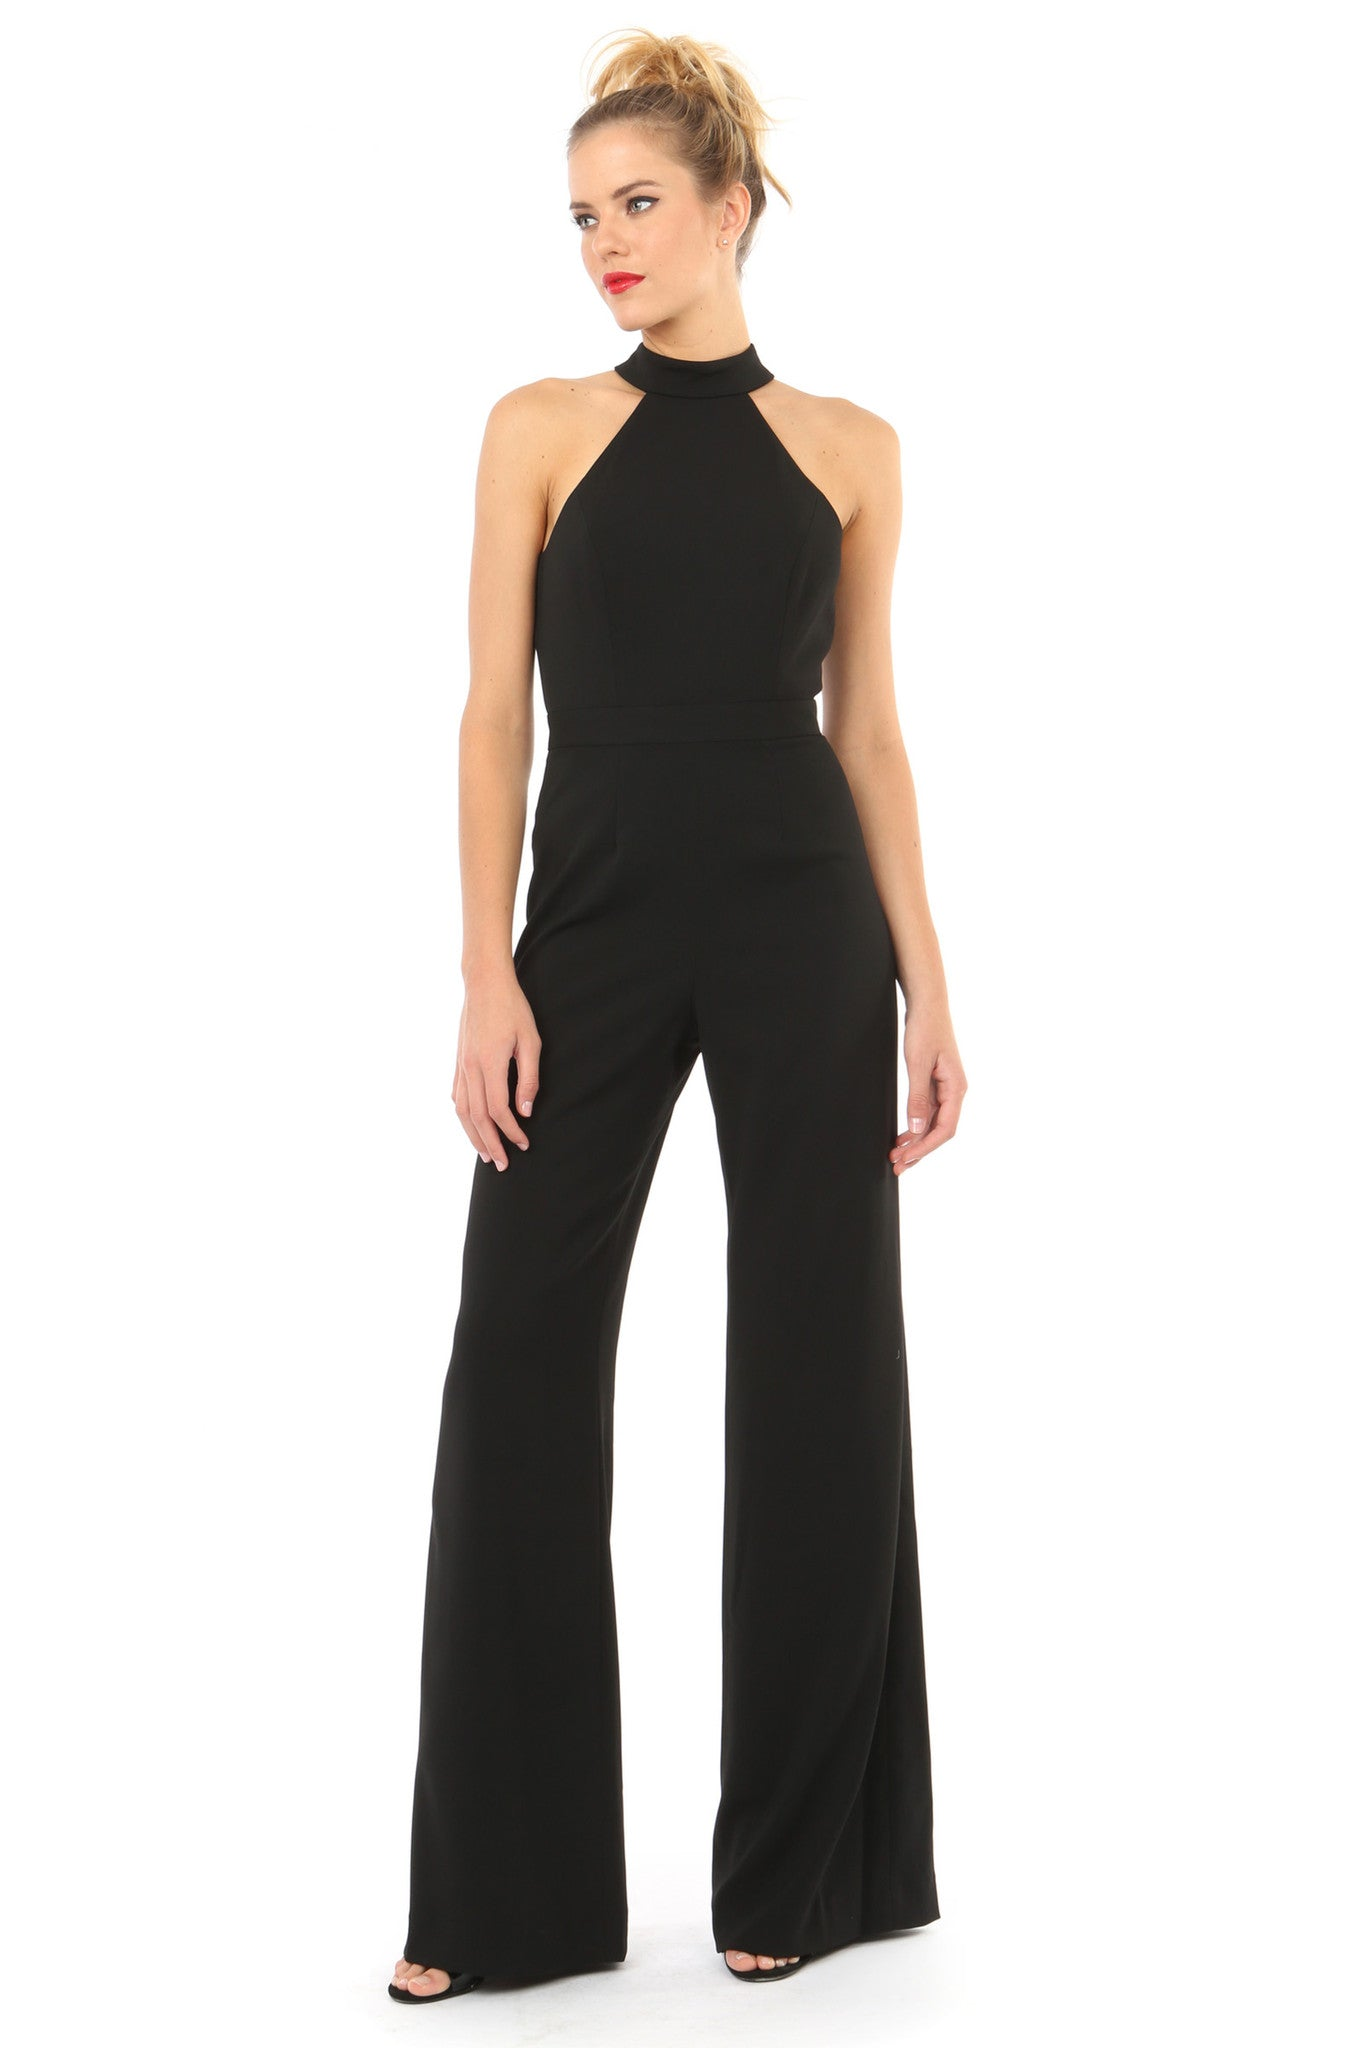 Jay Godfrey Black Halter Neck Jumpsuit - Front View